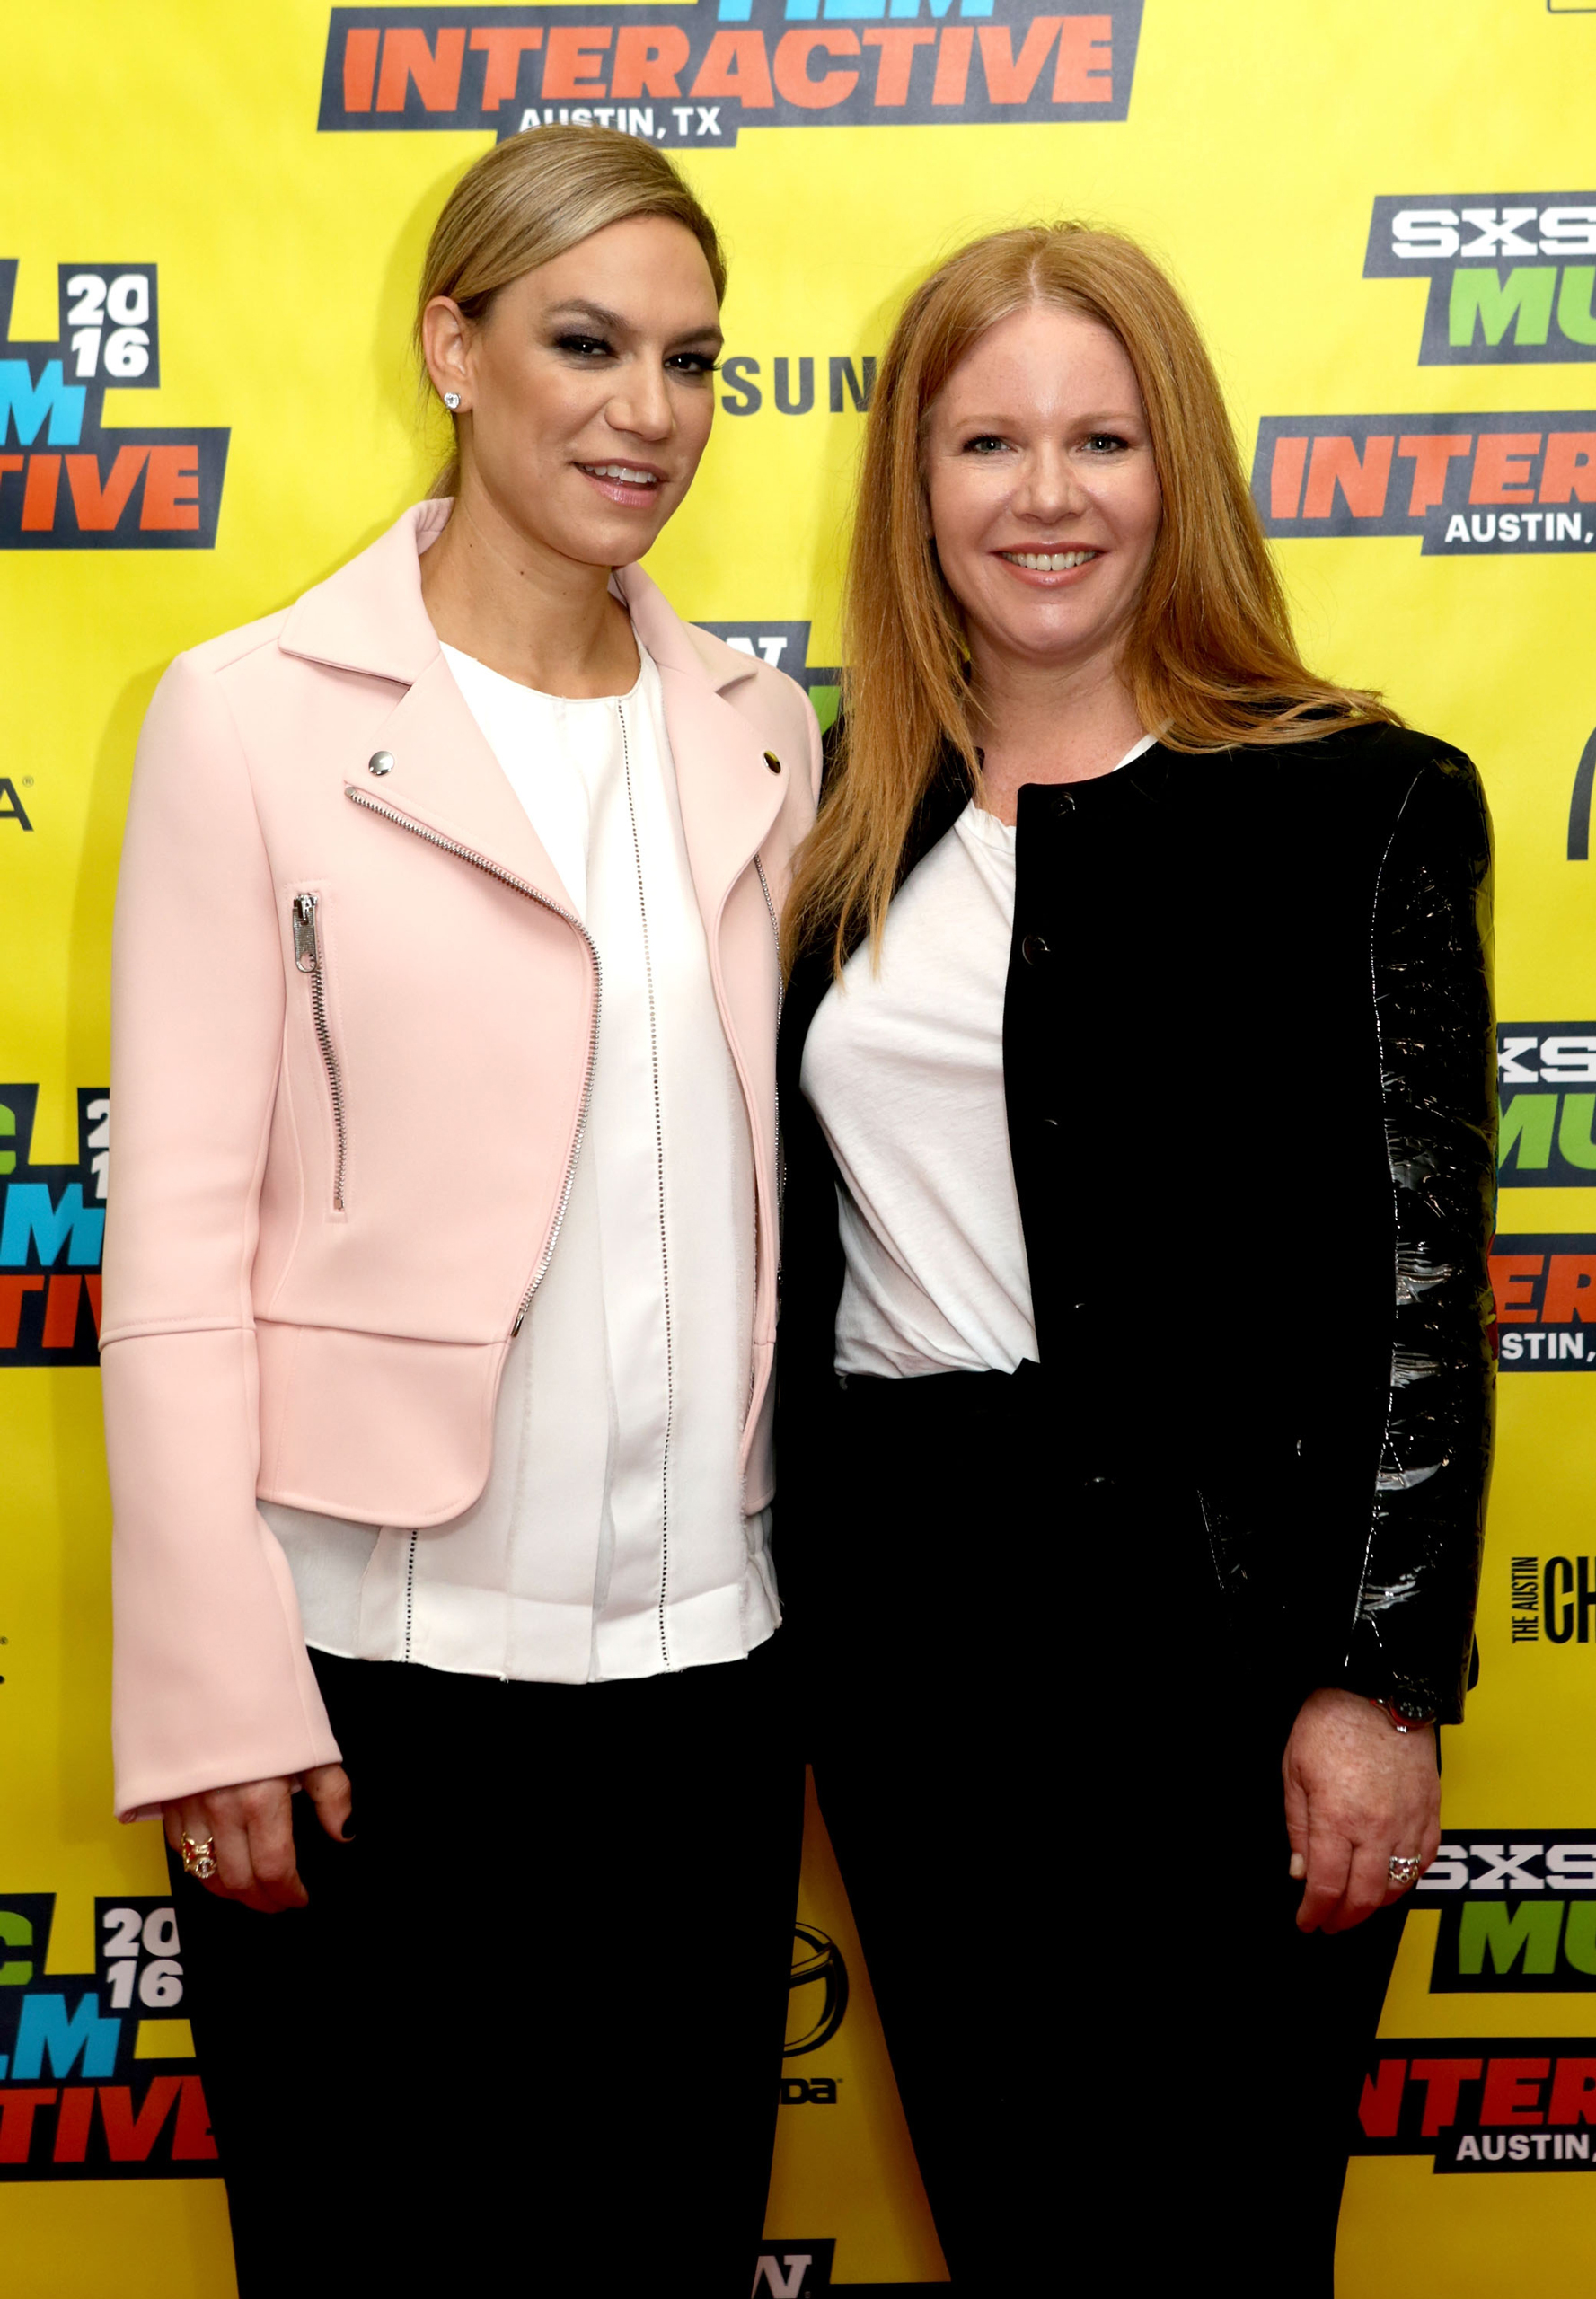 Julie Rice (left) and Elizabeth Cutler, Co-Founders and Chief Creative Officers of SoulCycle attend 'Creating a Movement: The Story of Soul Cycle' during the 2016 SXSW Music, Film + Interactive Festival at Austin Convention Center in Austin on Mar. 15, 2016.